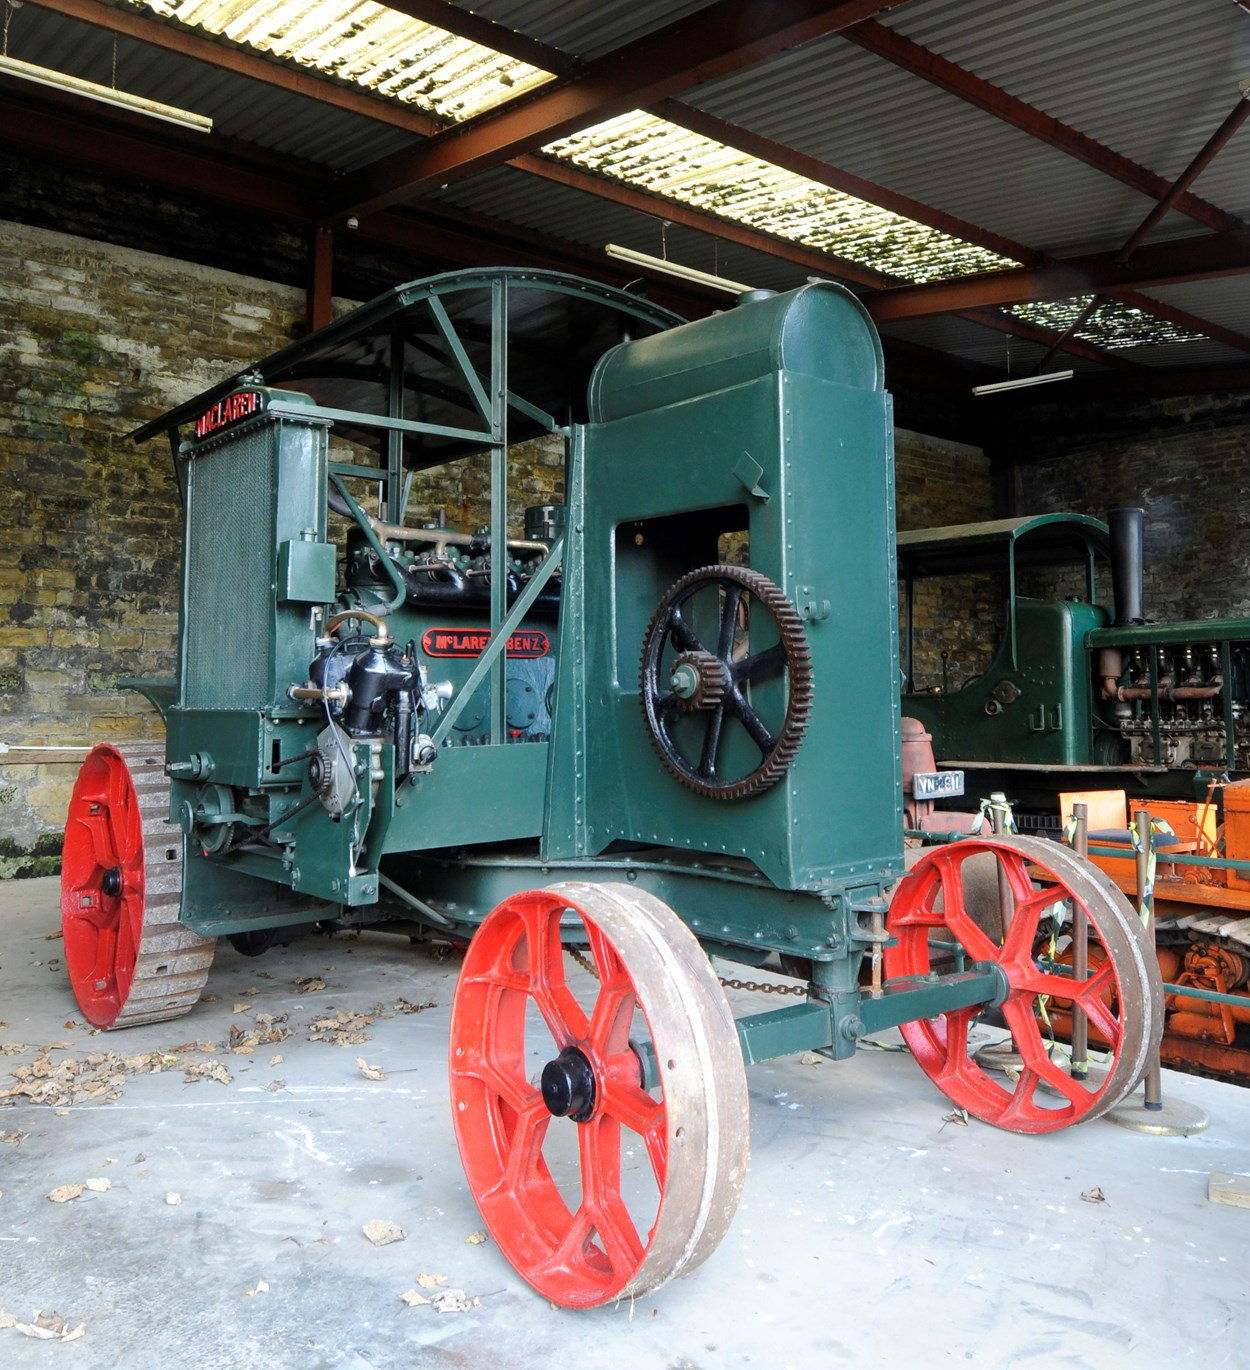 Leeds Industrial Museum: A Leeds-made ploughing windlass, like those exported around the world by local firms.